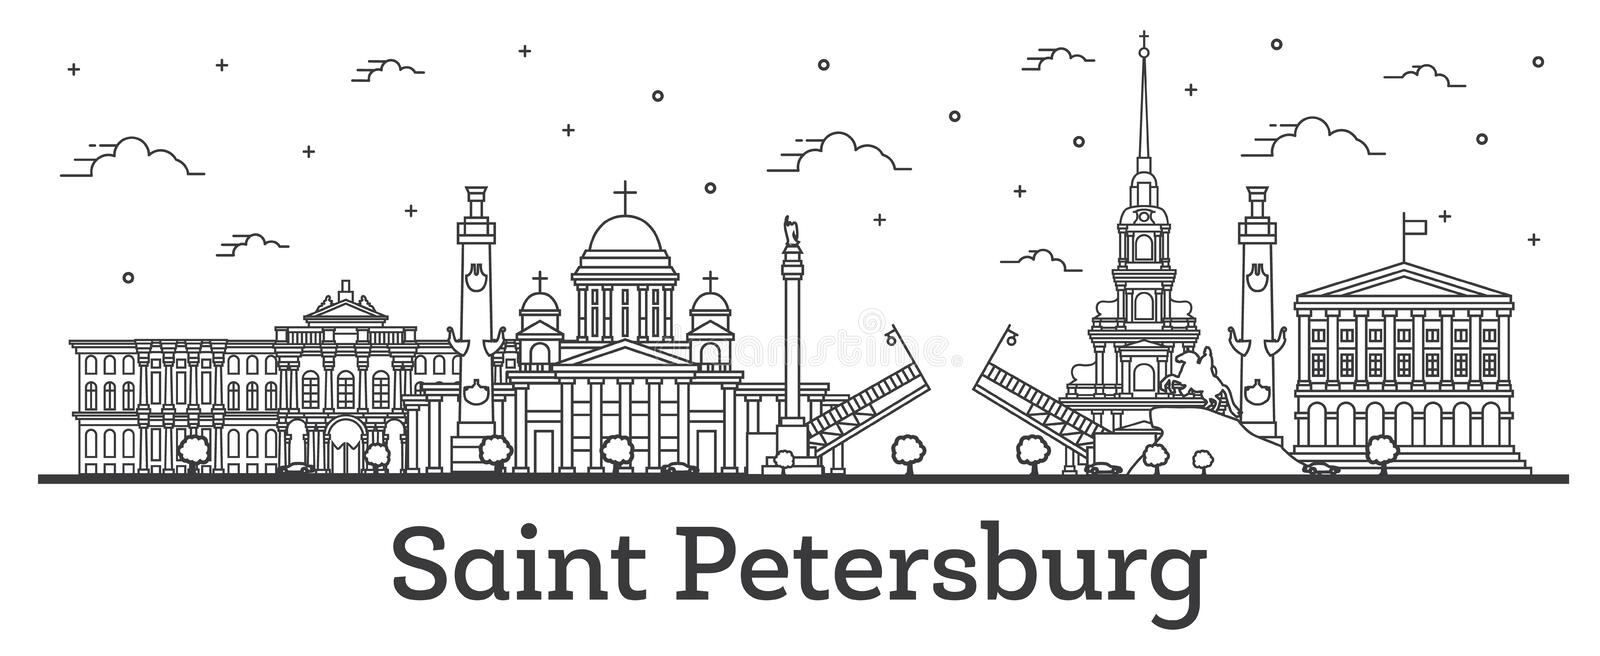 Outline Saint Petersburg Russia City Skyline with Historic Buildings Isolated on White royalty free illustration